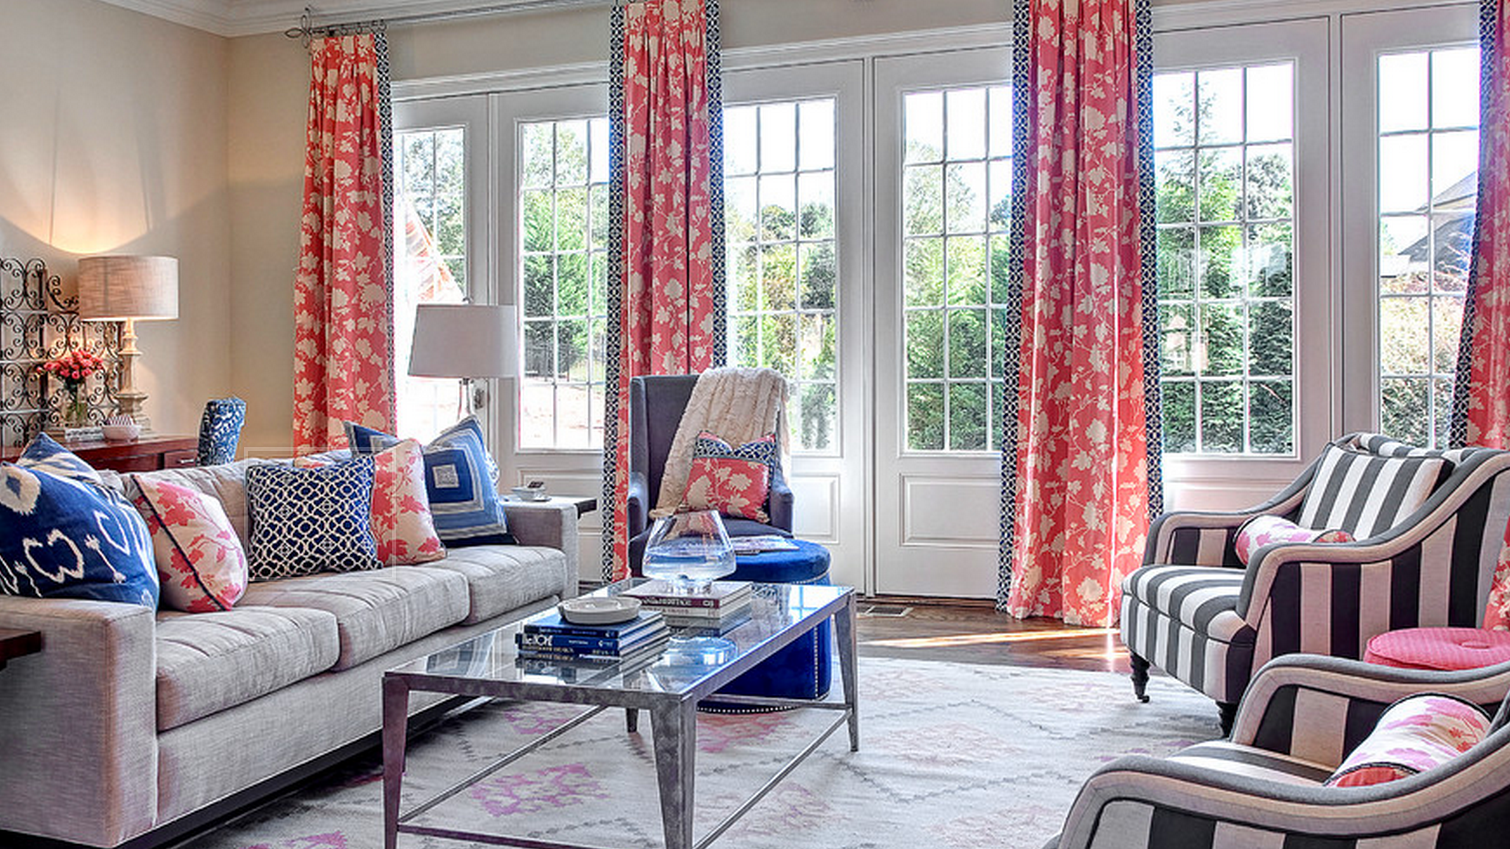 How To Mix Patterns In A Room